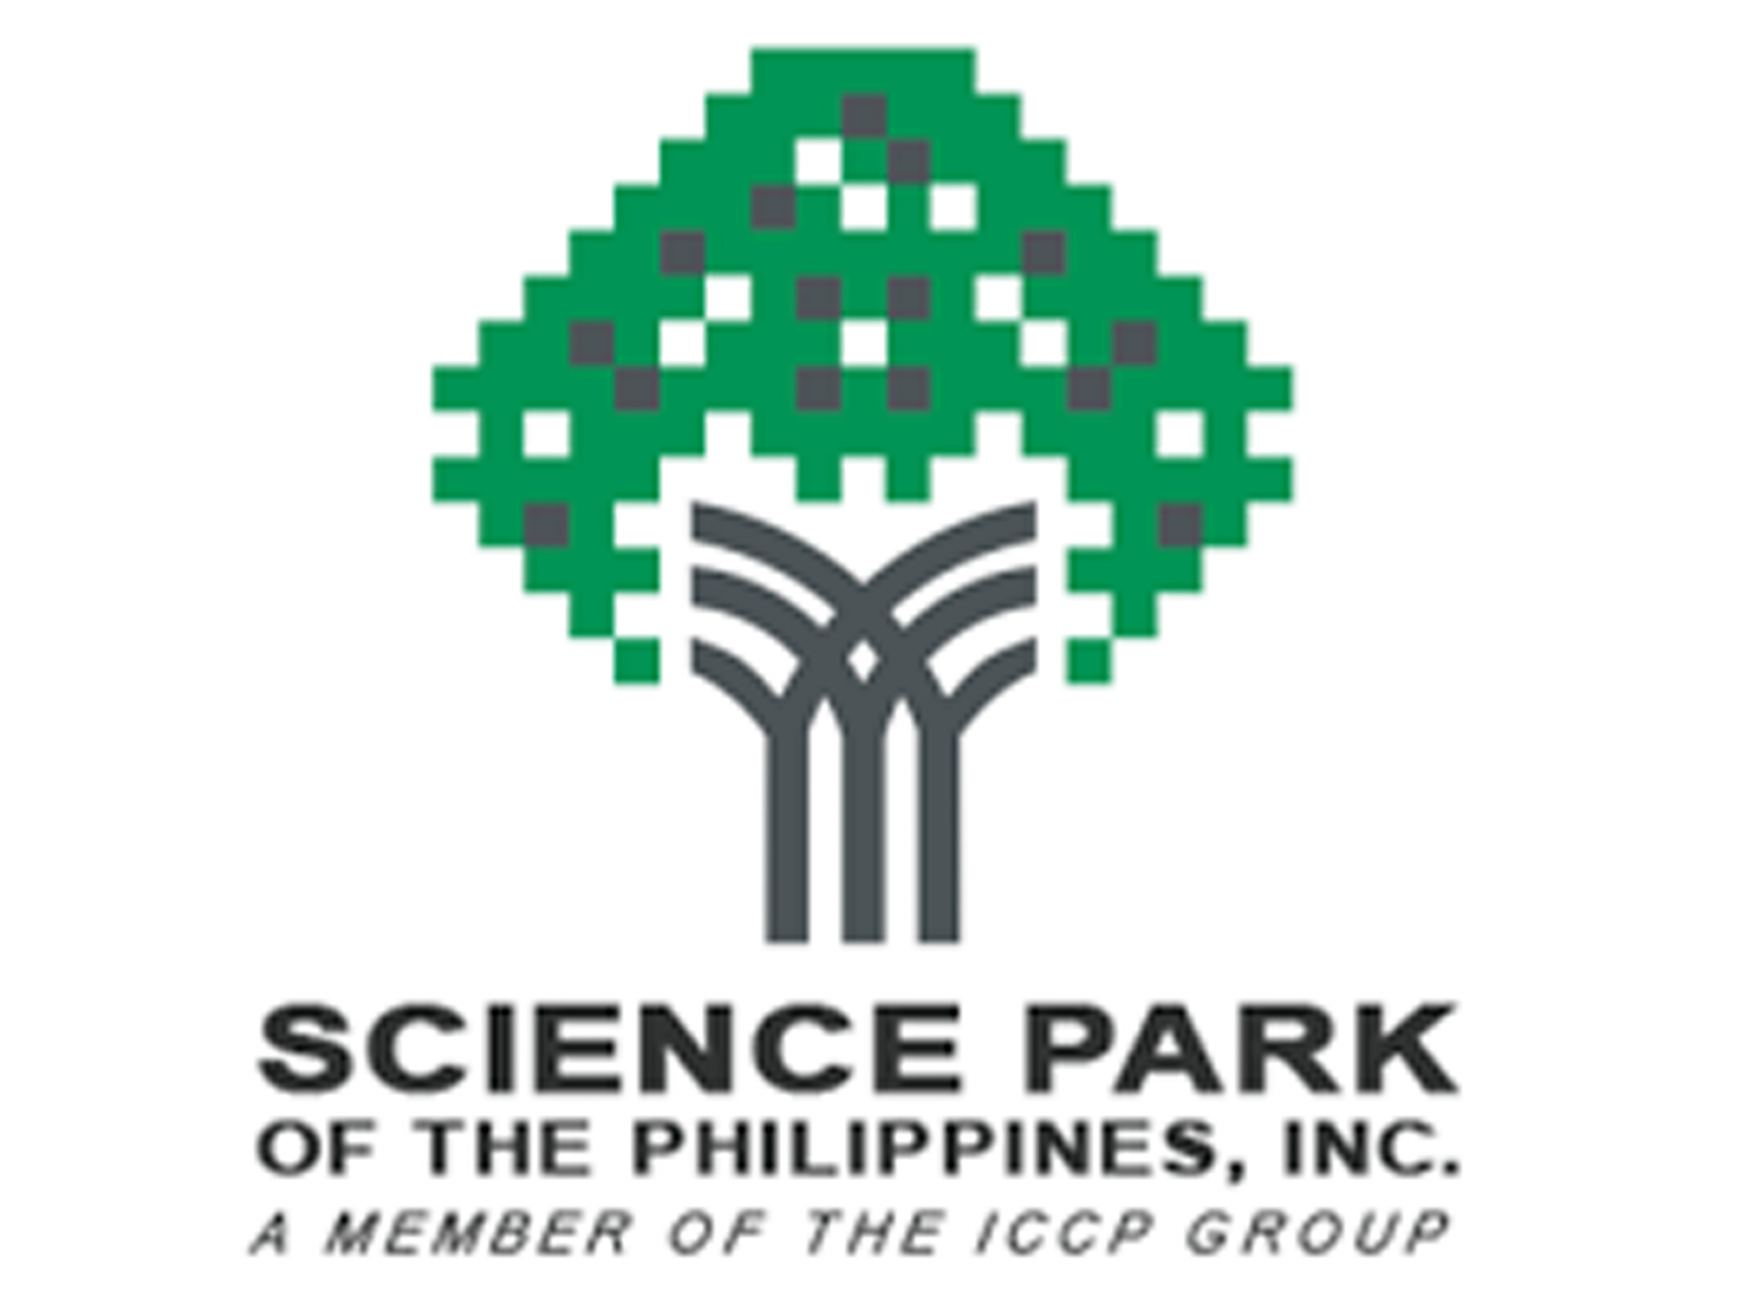 Science Park of the Philippines, Inc. Logo